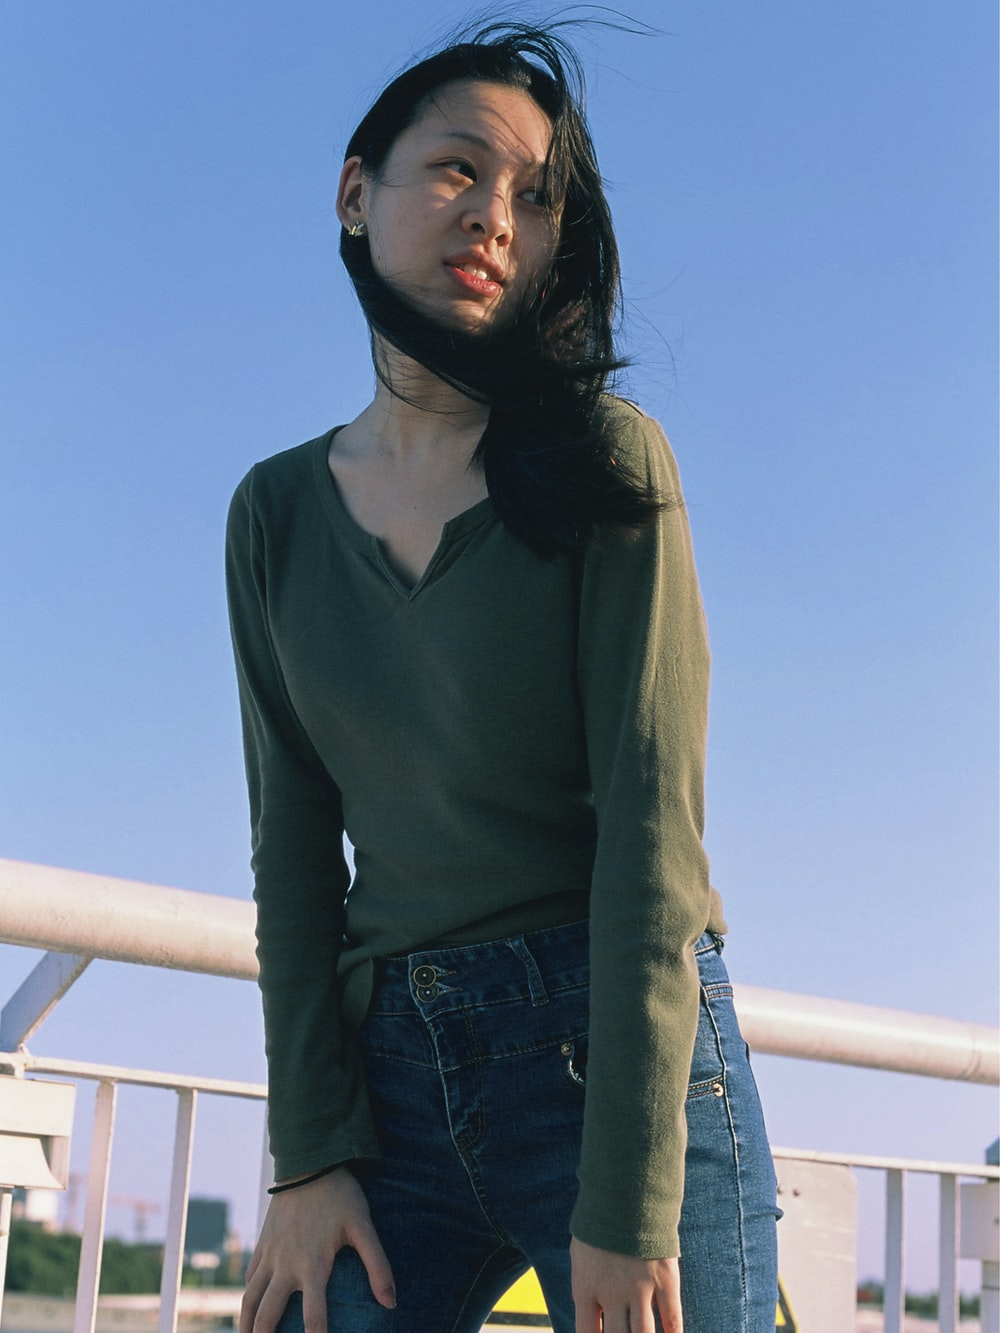 woman in green long sleeve shirt and blue denim jeans standing on white metal railings during